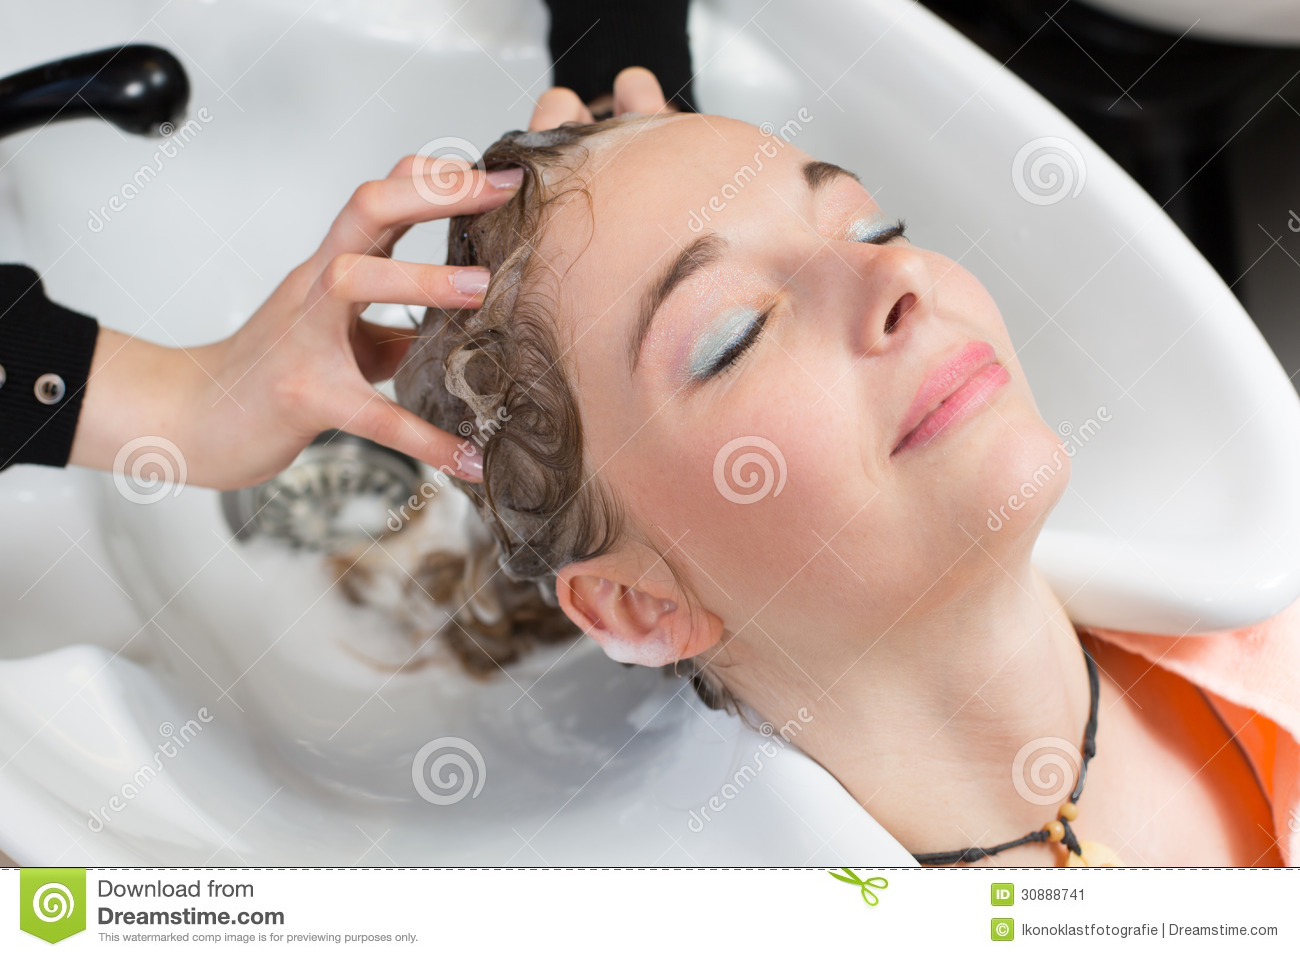 Hairstylist washing customers hair stock image image of for Wash hair salon